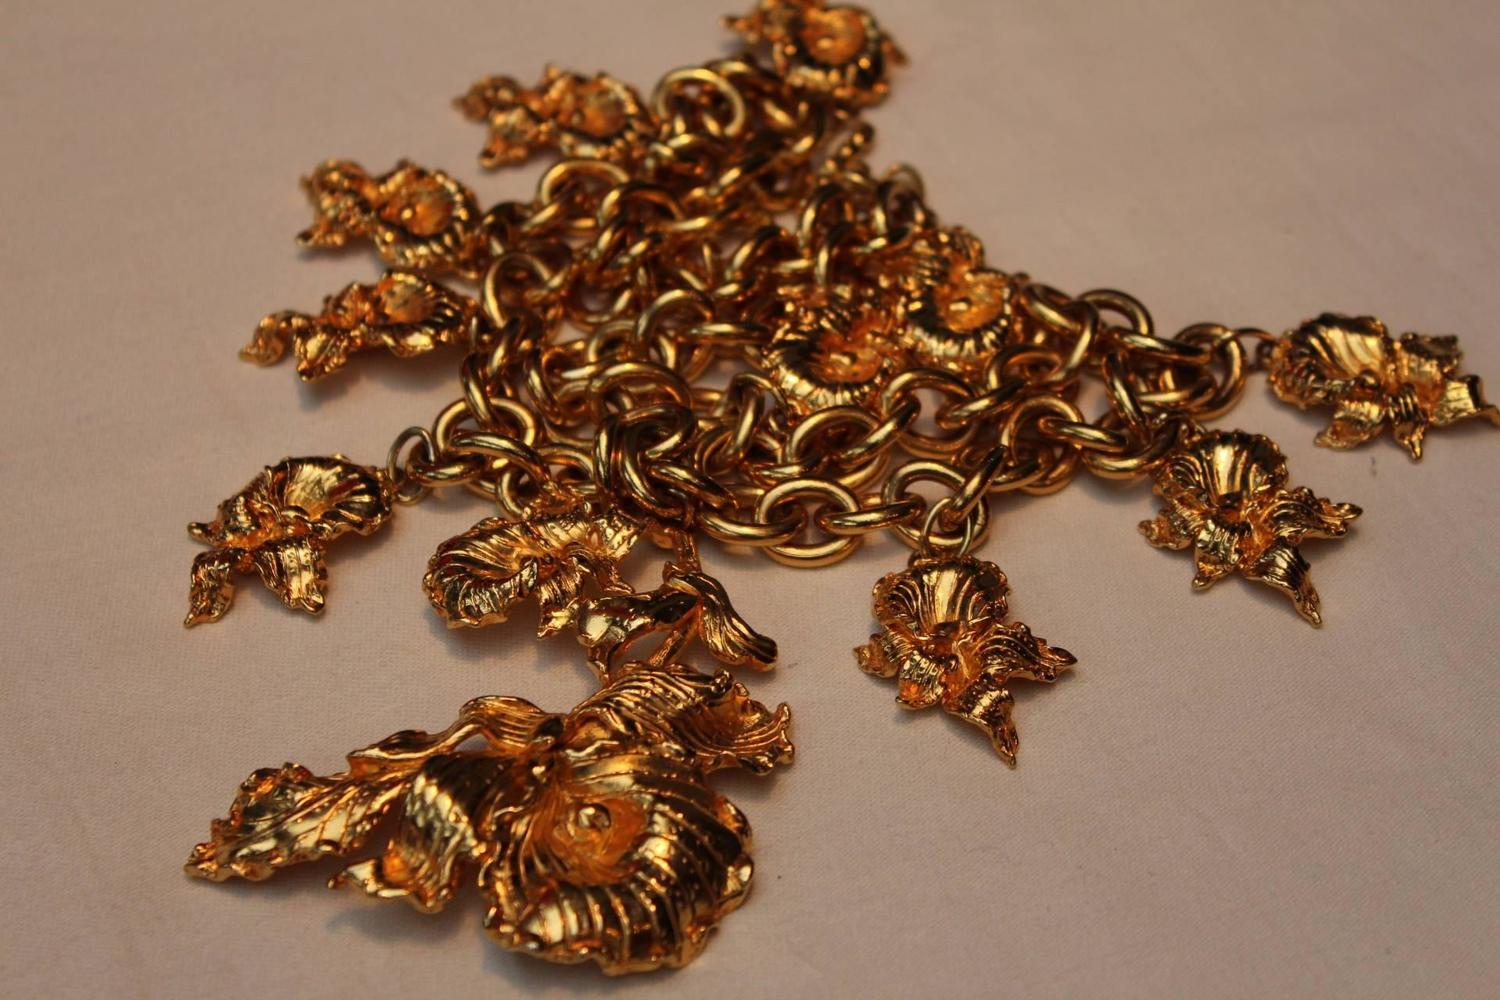 1980s Leonard Gilt Pansy Flowers Long Necklace For Sale at 1stdibs